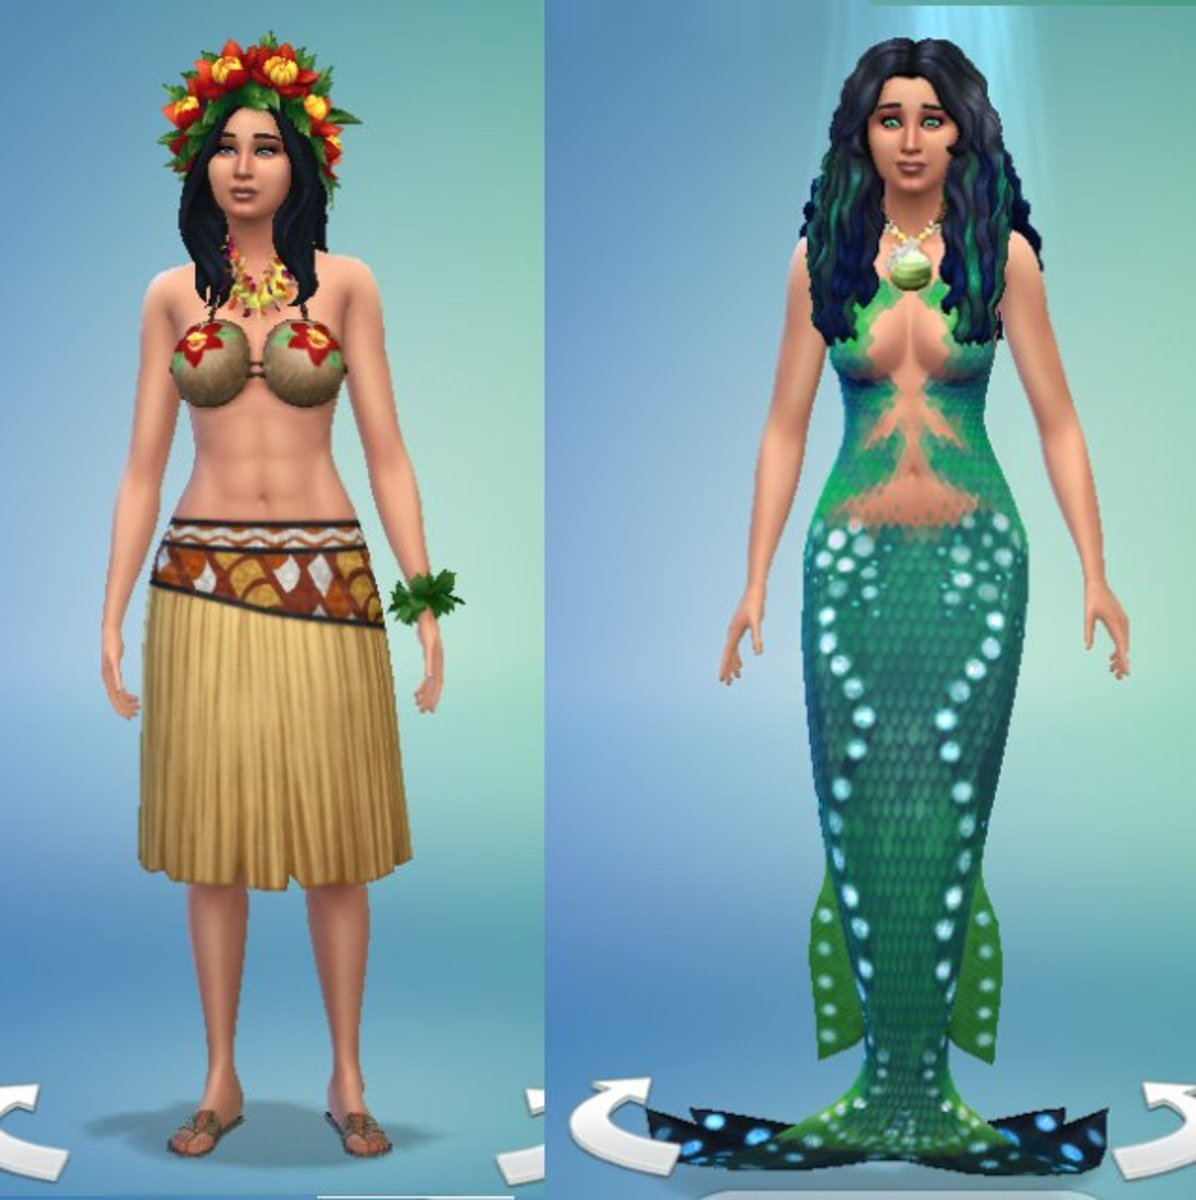 Now, your Sim can have a human and a mermaid form. Can you imagine the mixes between humans, aliens, vampires and mermaids now? Life is getting pretty exciting in the Sims universe.